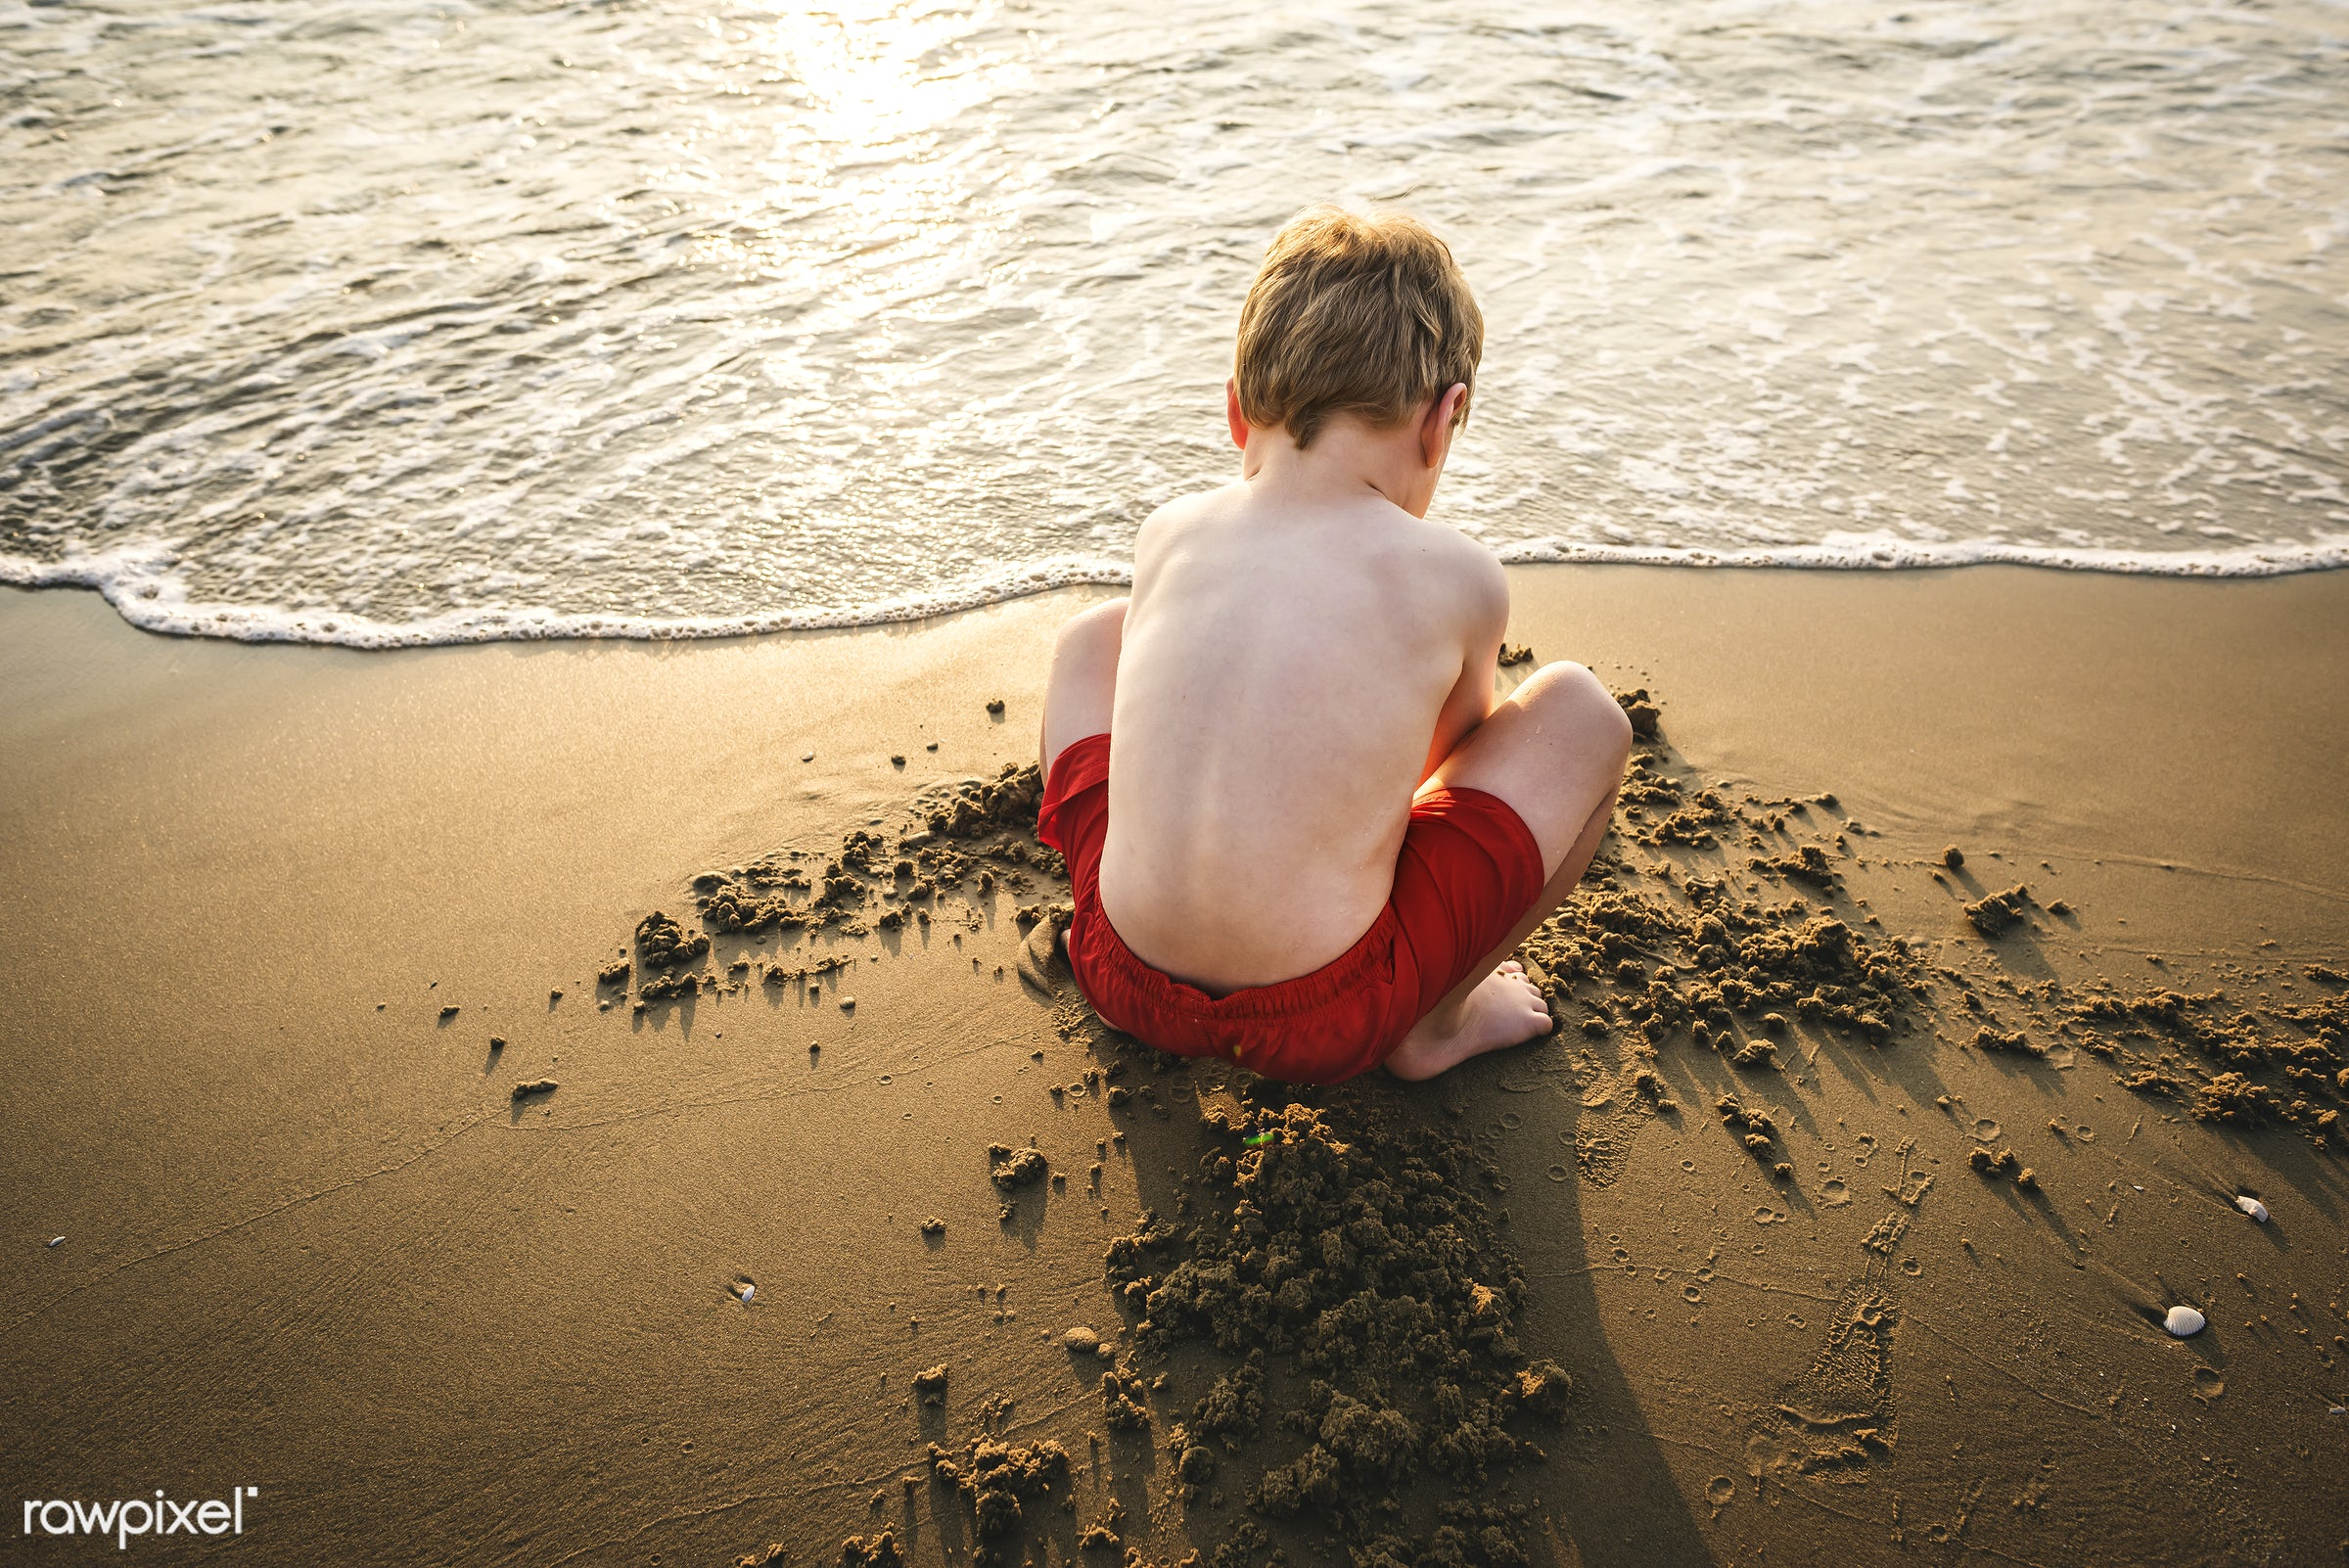 A little boy playing in the sand - activity, adorable, beach, boy, castle, child, childhood, children, coastline, cute, dig...